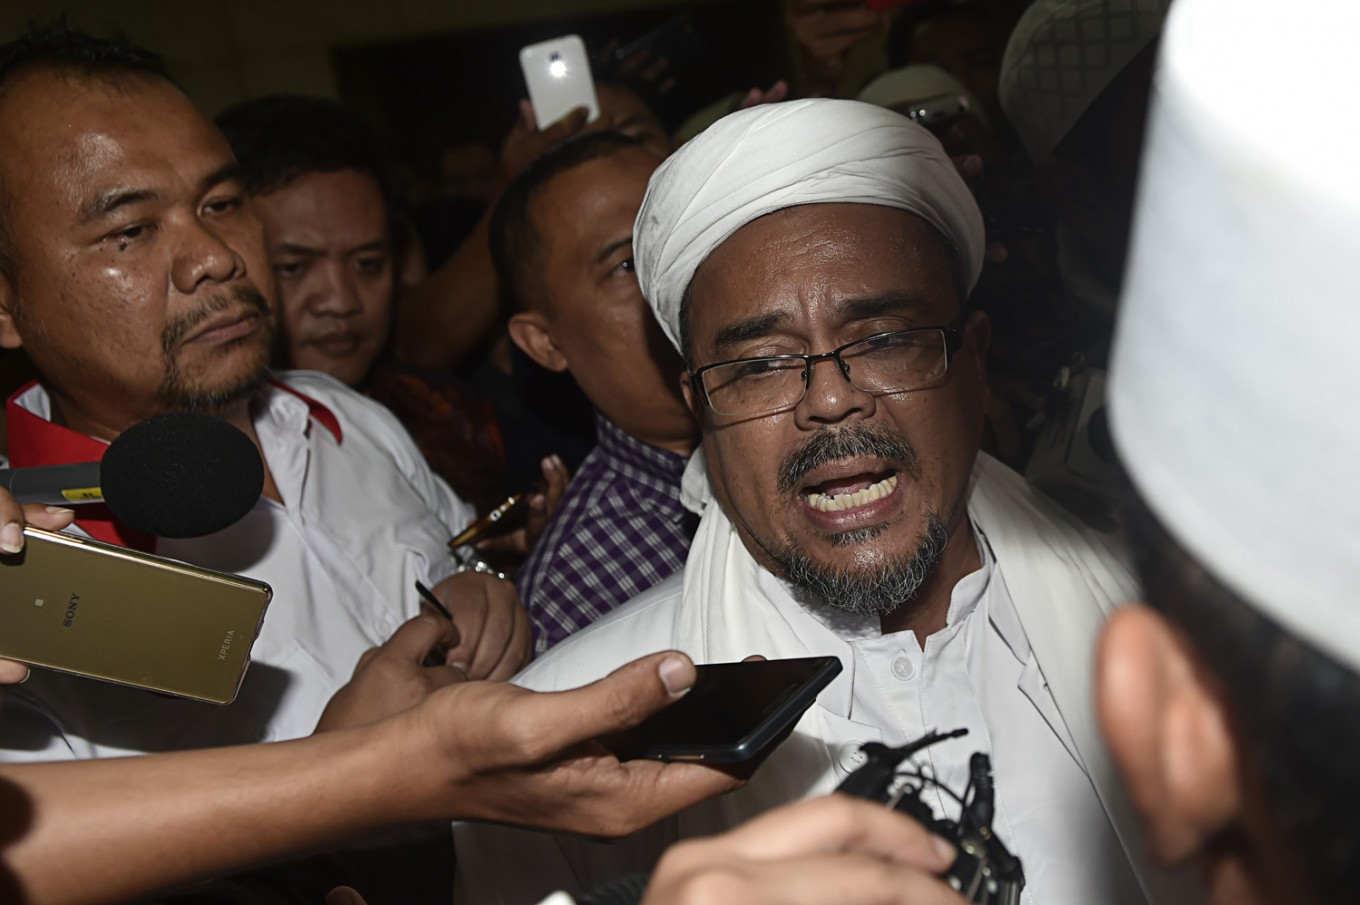 FPI leader reported to police for allegedly committing religious blasphemy